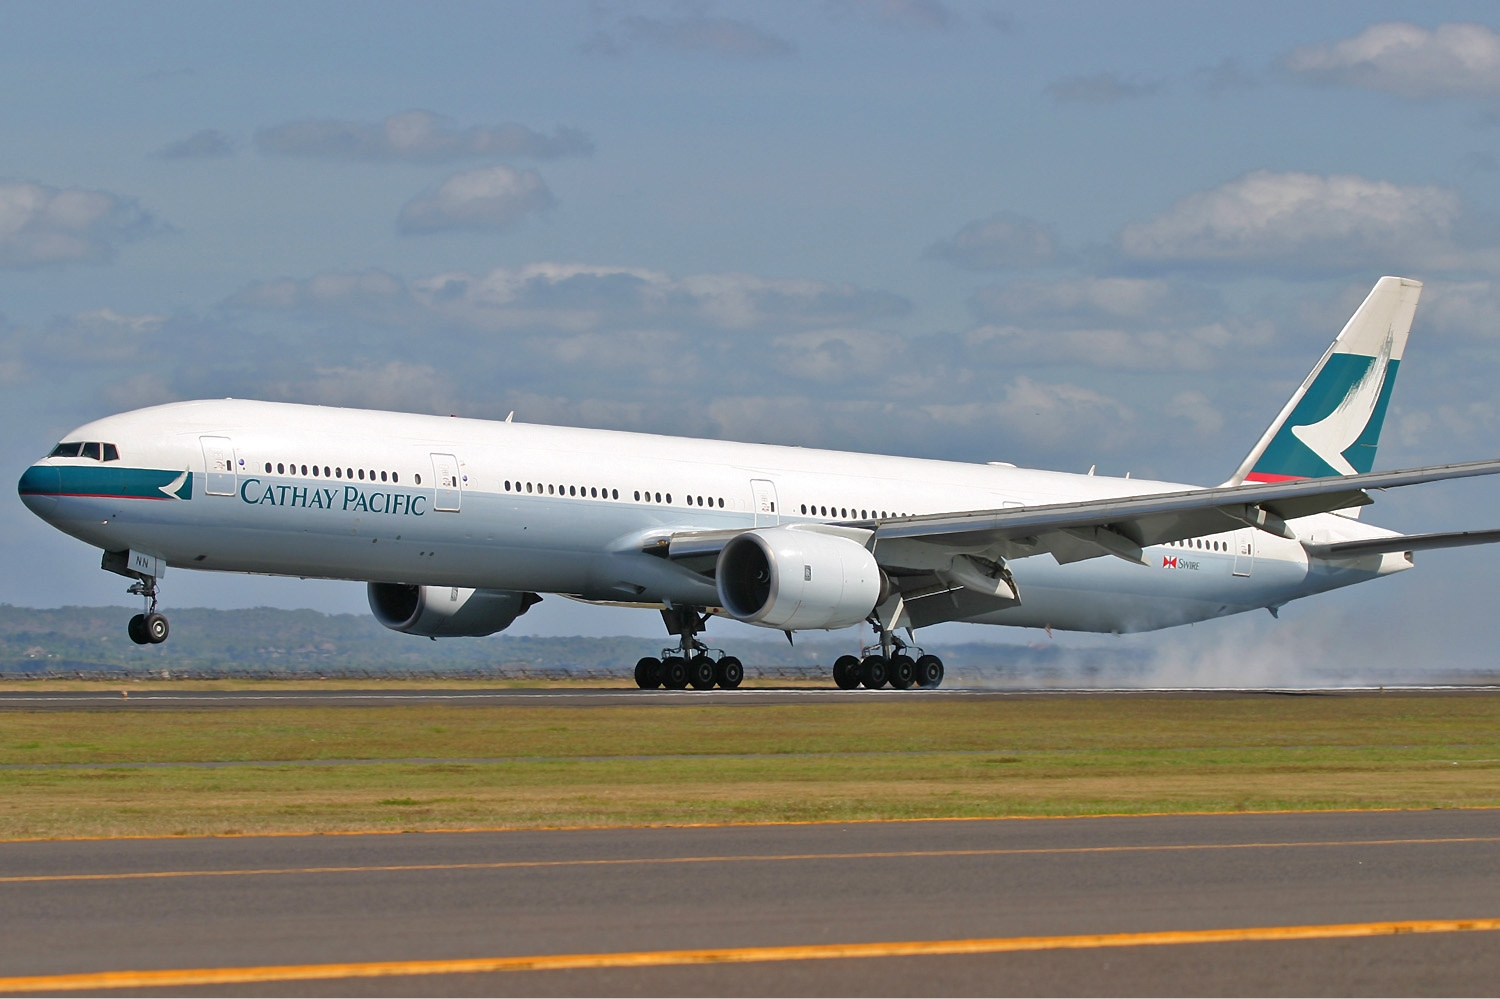 https://i0.wp.com/upload.wikimedia.org/wikipedia/commons/f/ff/Cathay_Pacific_Boeing_777-300_Pichugin-1.jpg